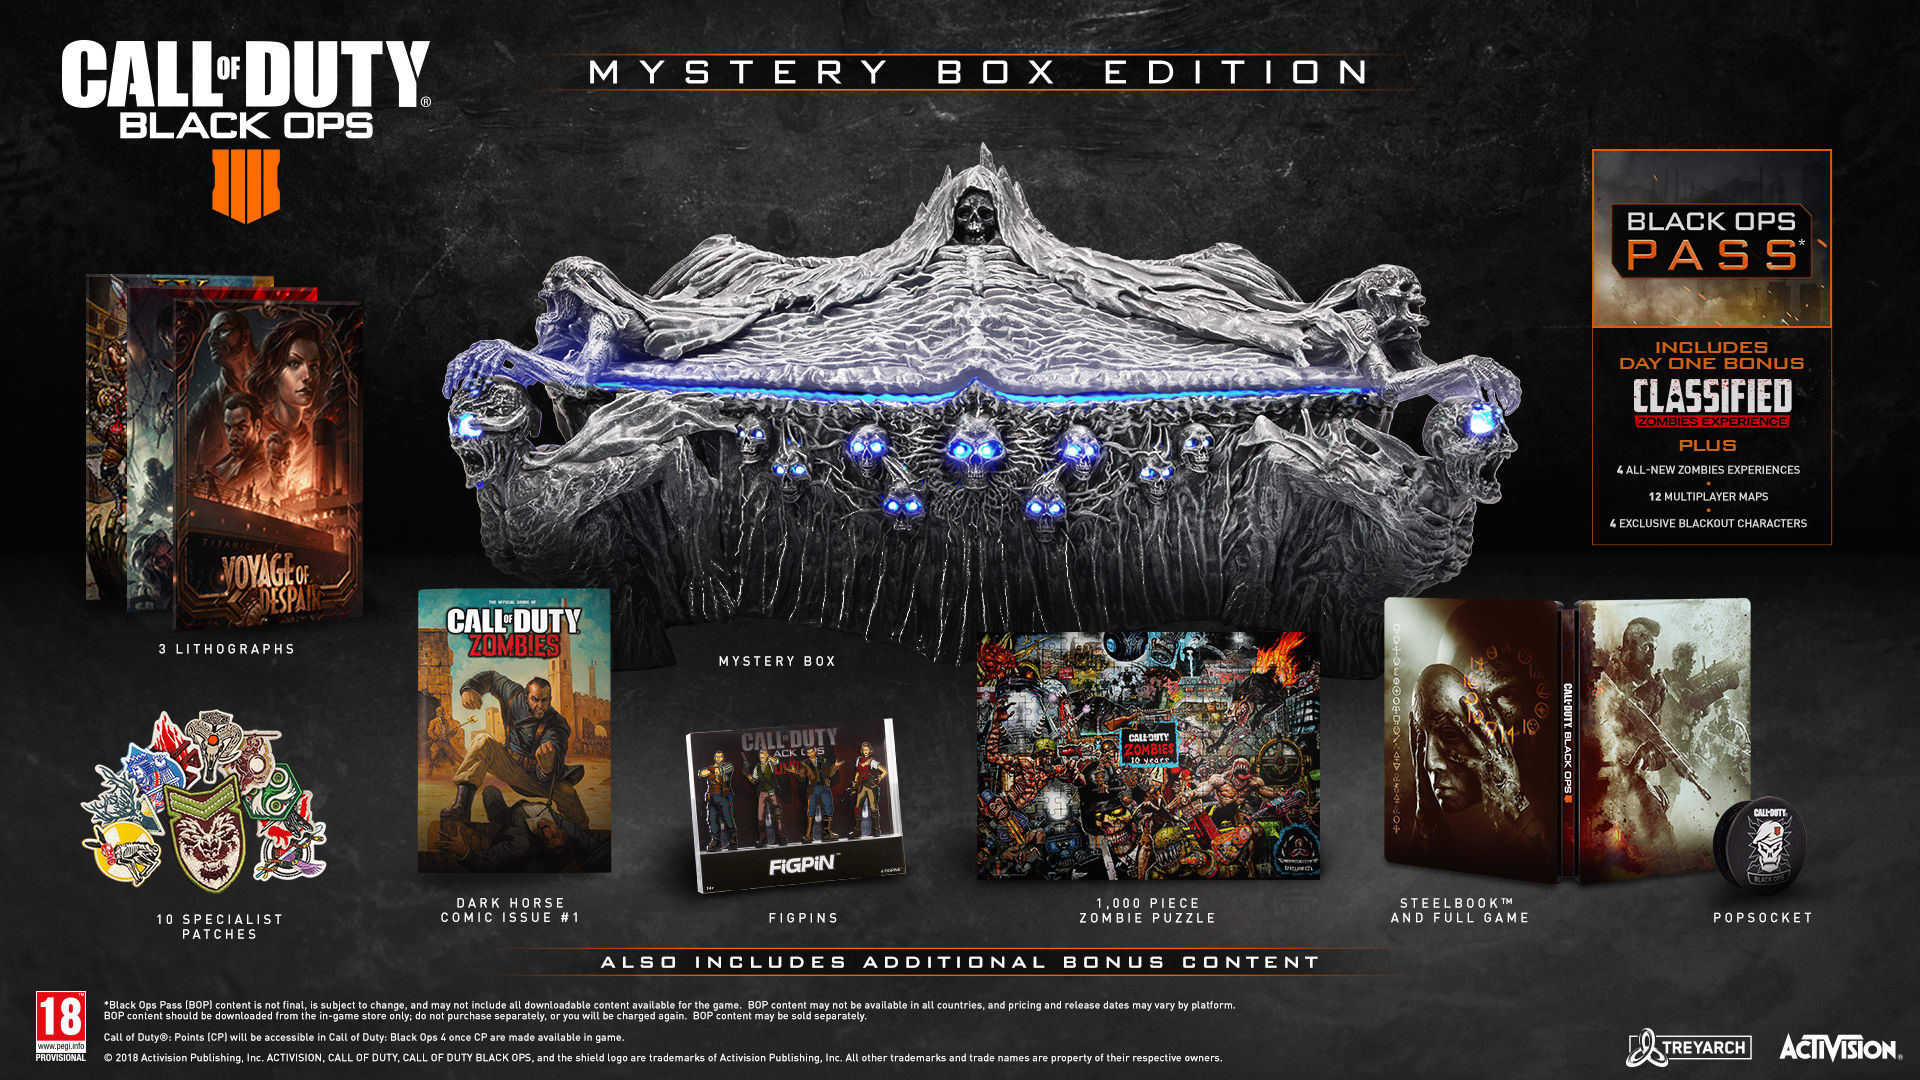 Call of Duty: Black Ops 4 – Mystery Box Edition